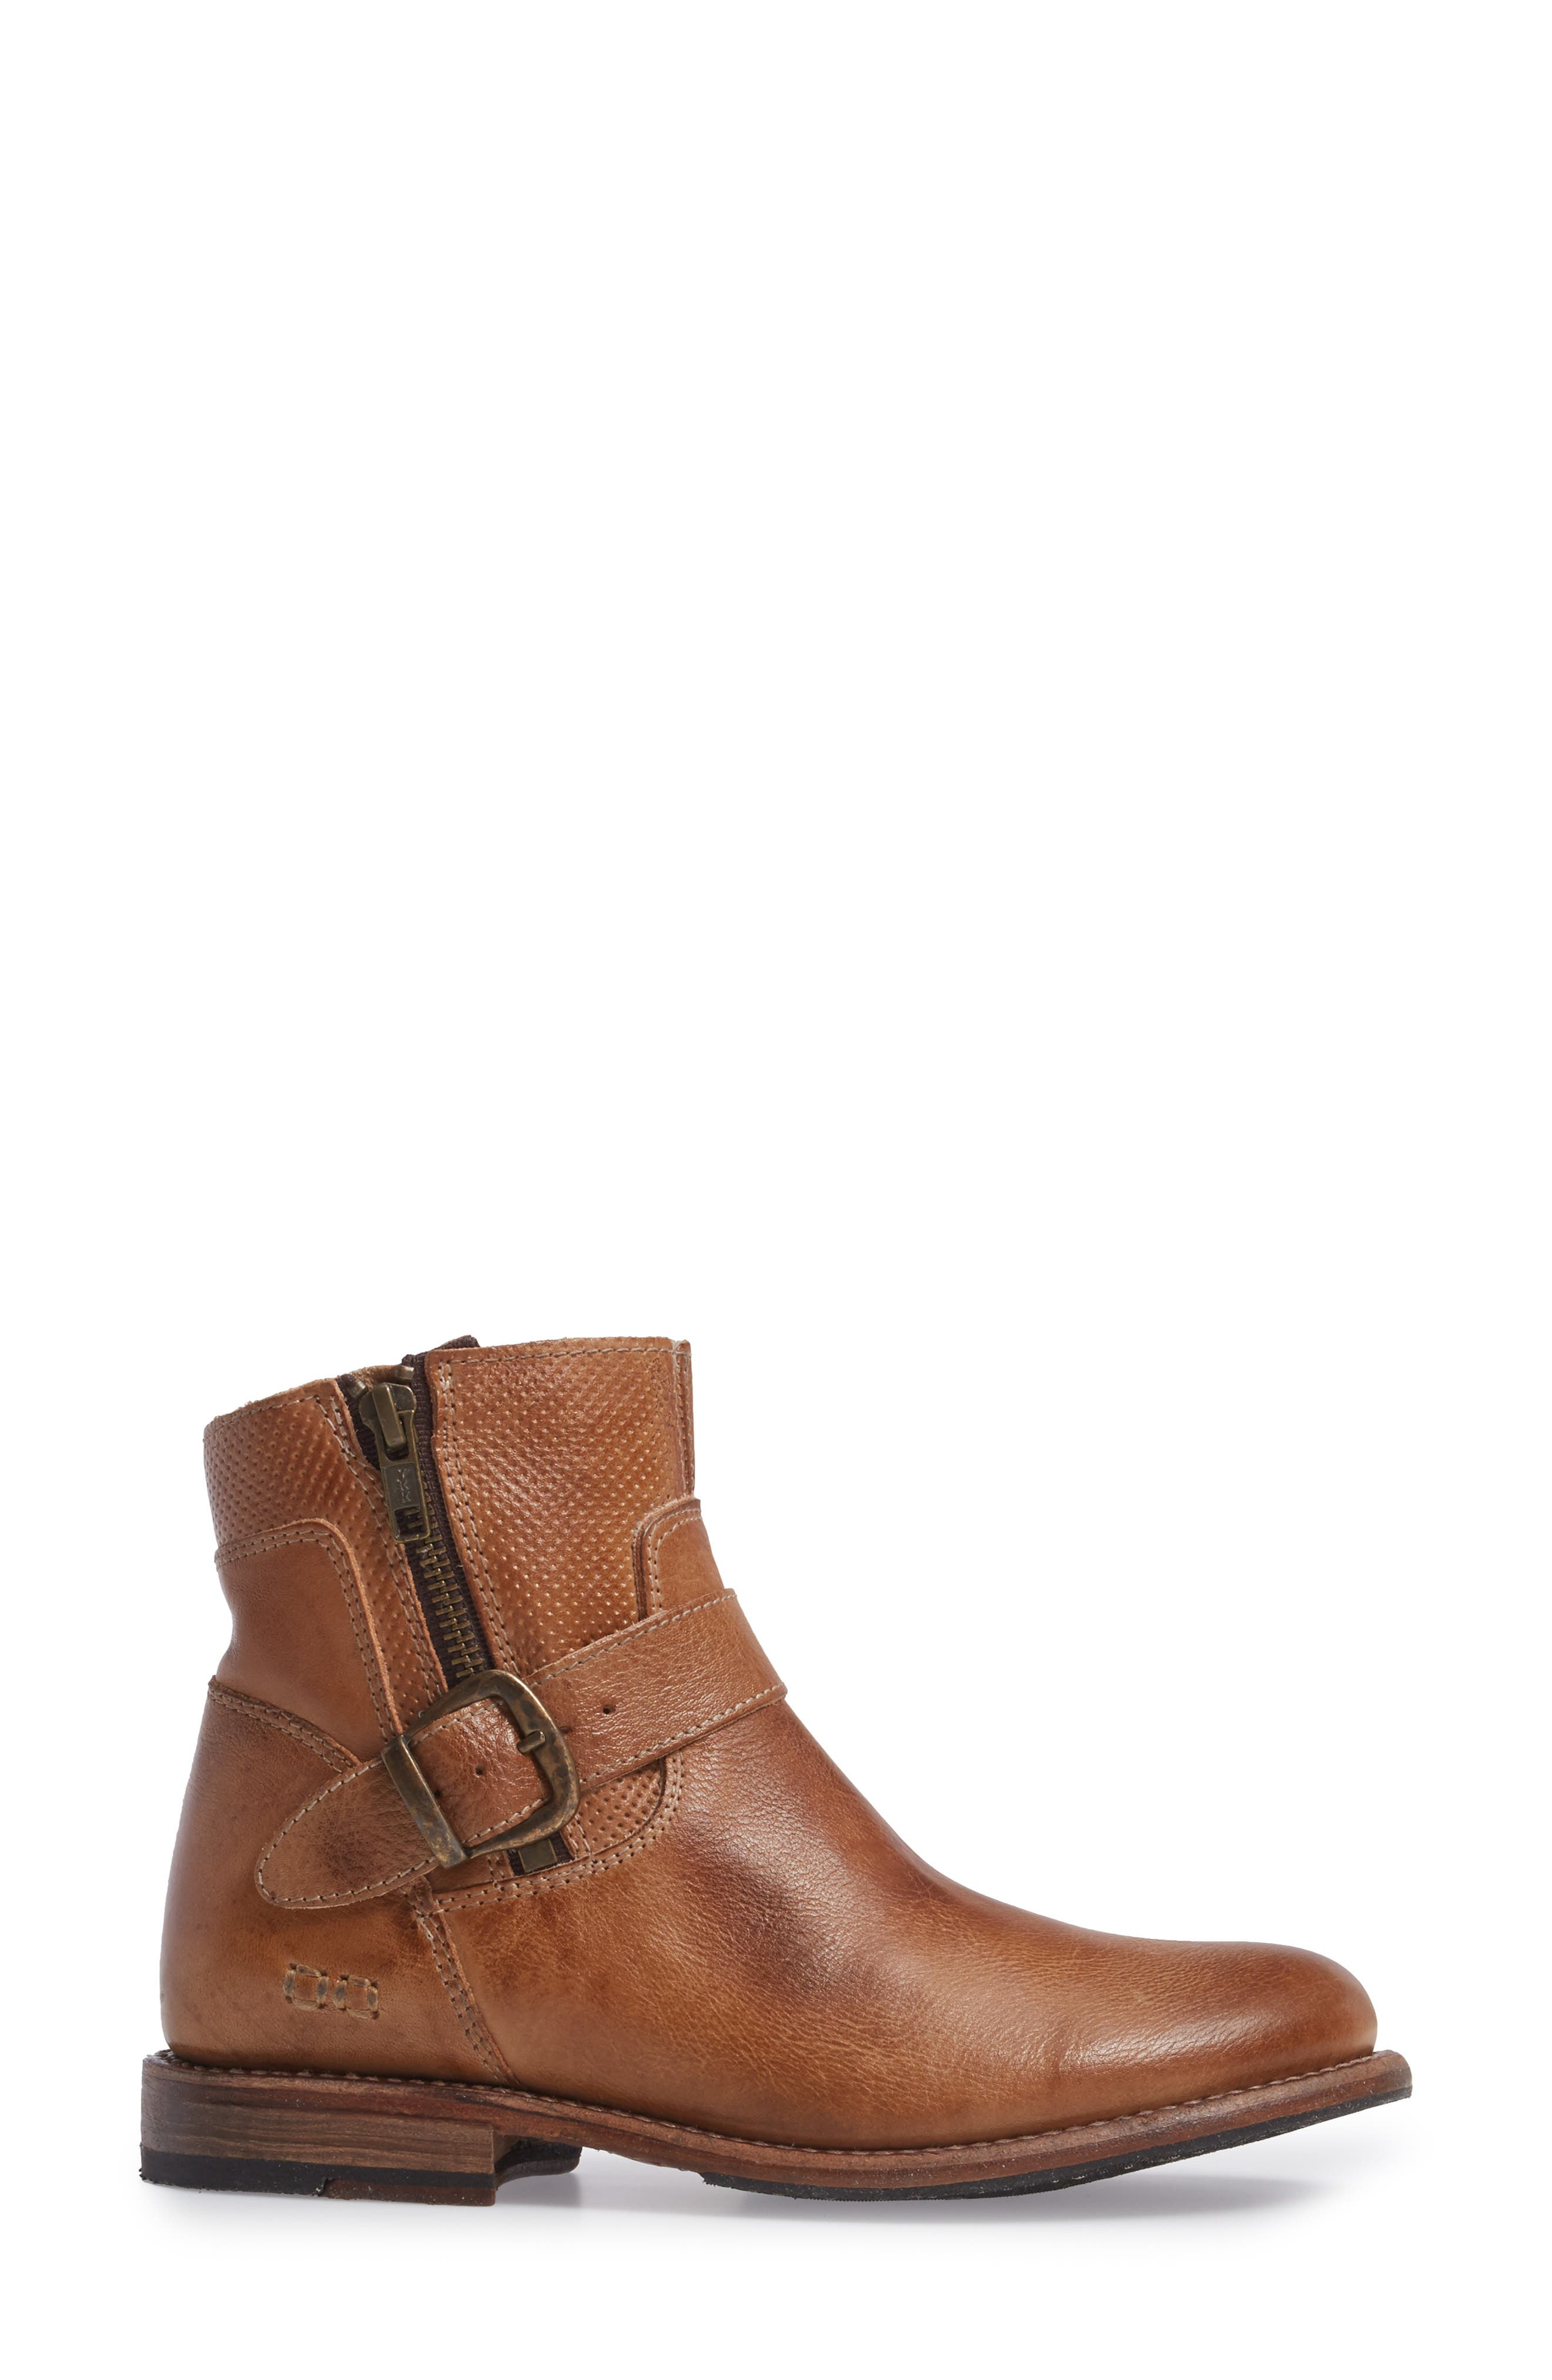 Becca Buckle Boot,                             Alternate thumbnail 3, color,                             Tan Rustic Leather